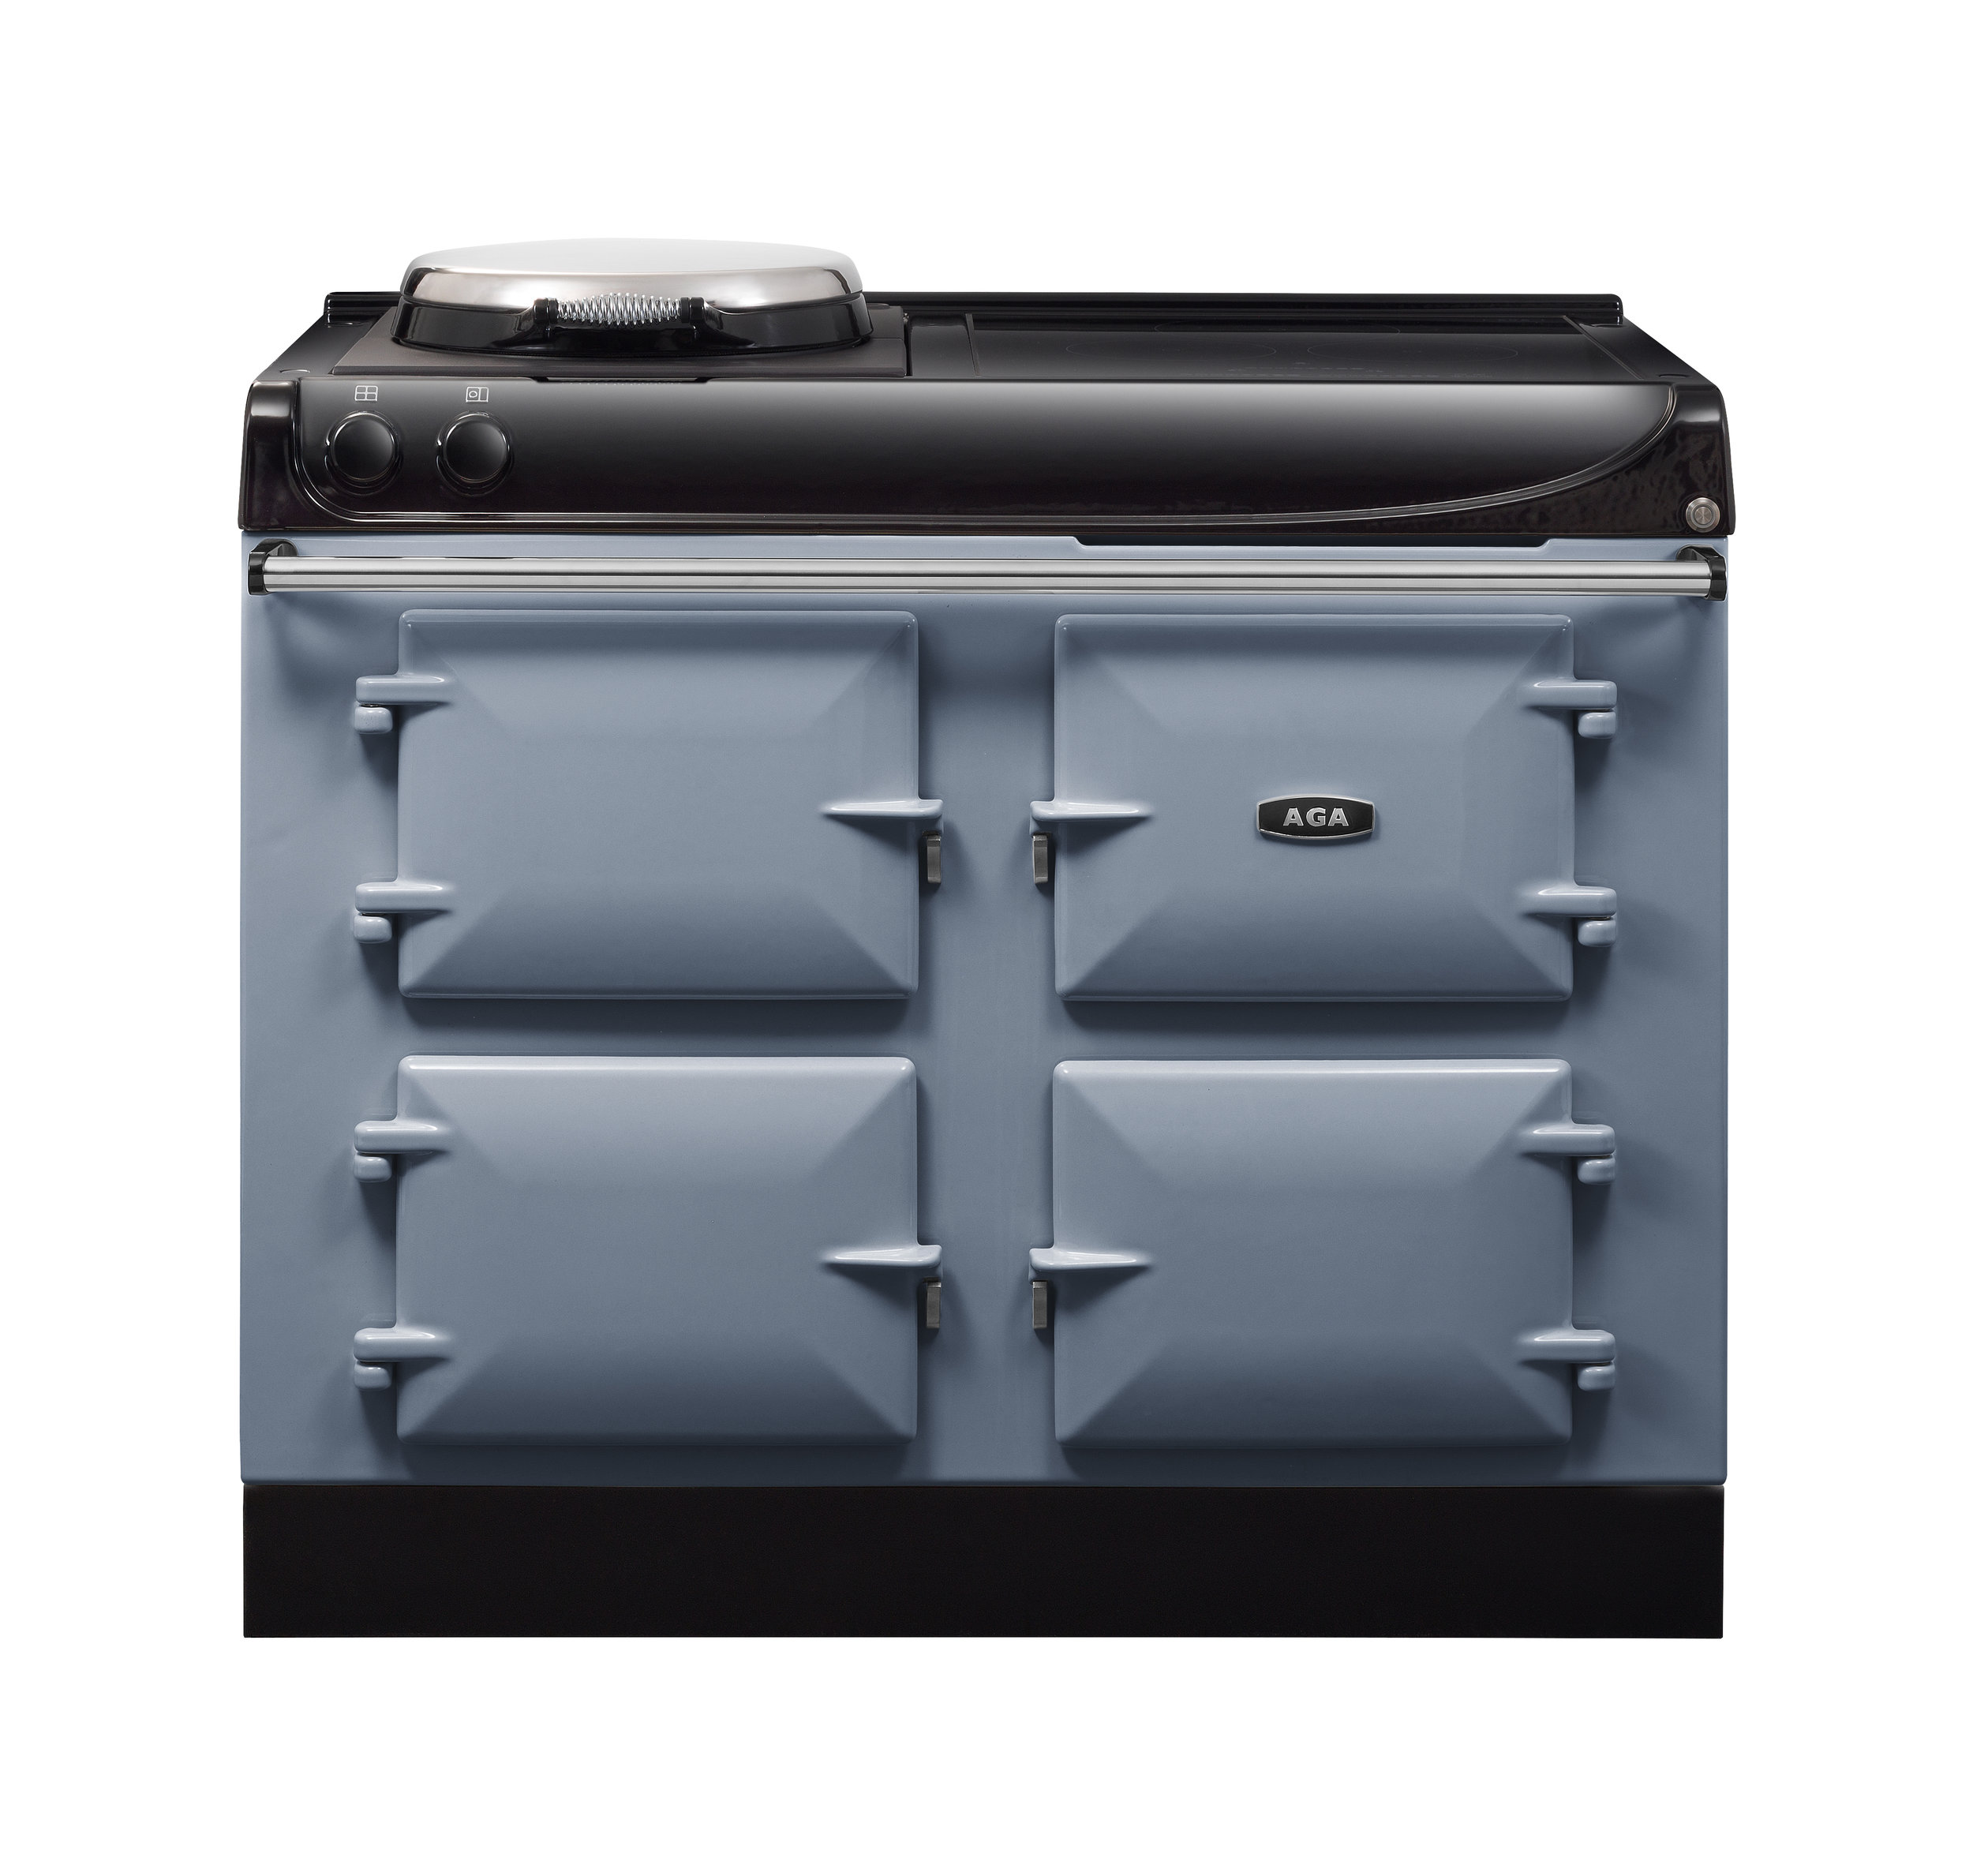 AGA 3 Series 110_Dove.jpg